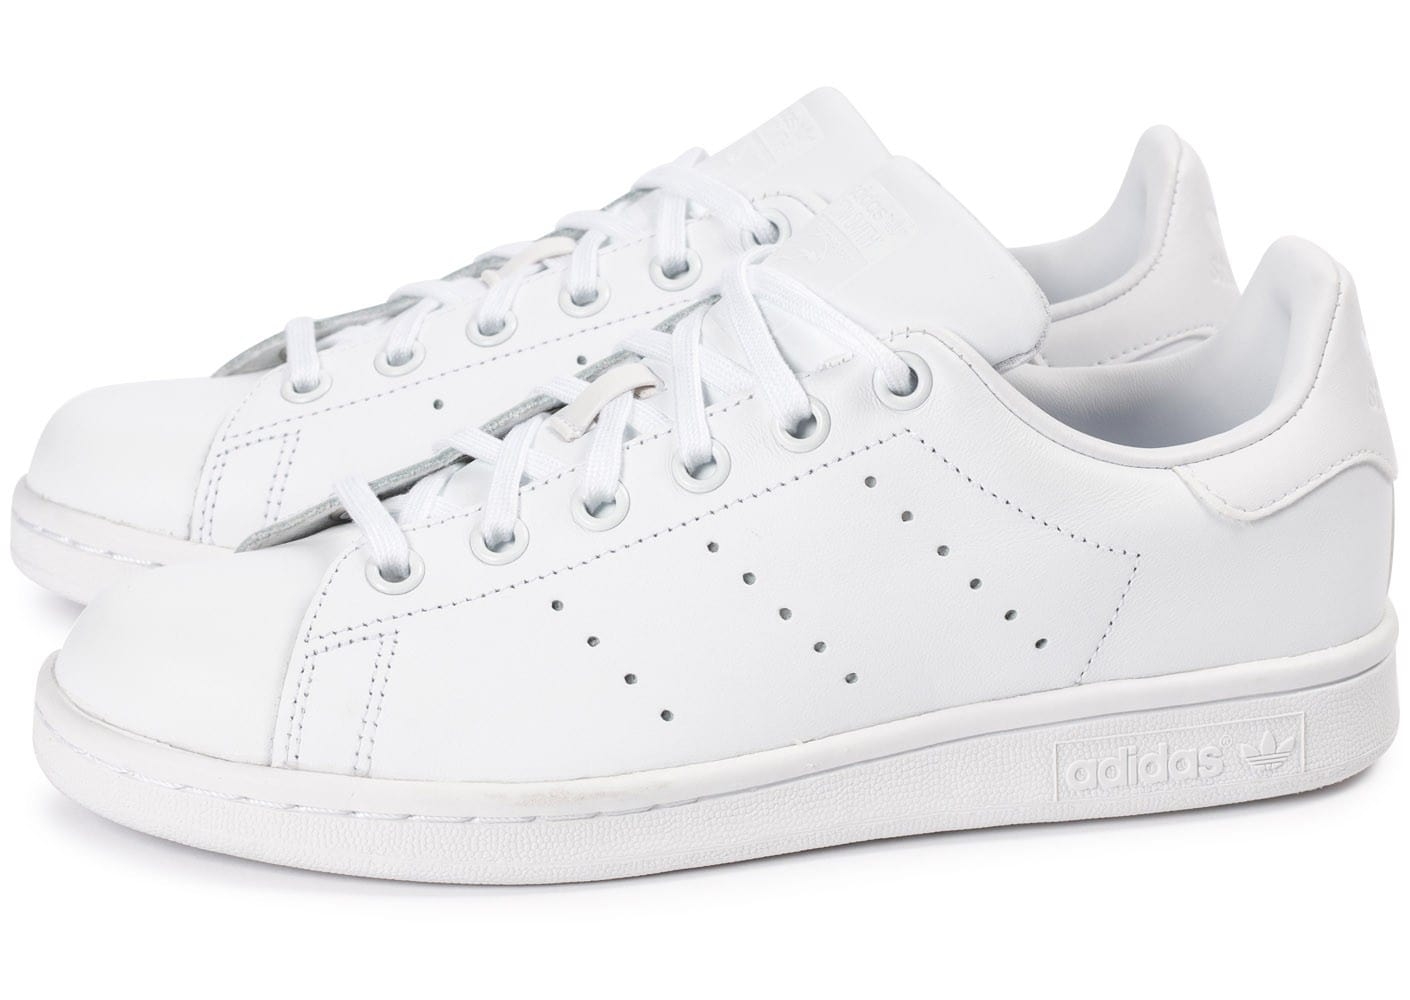 L'histoire de la Stan Smith d'adidas Originals Chausport